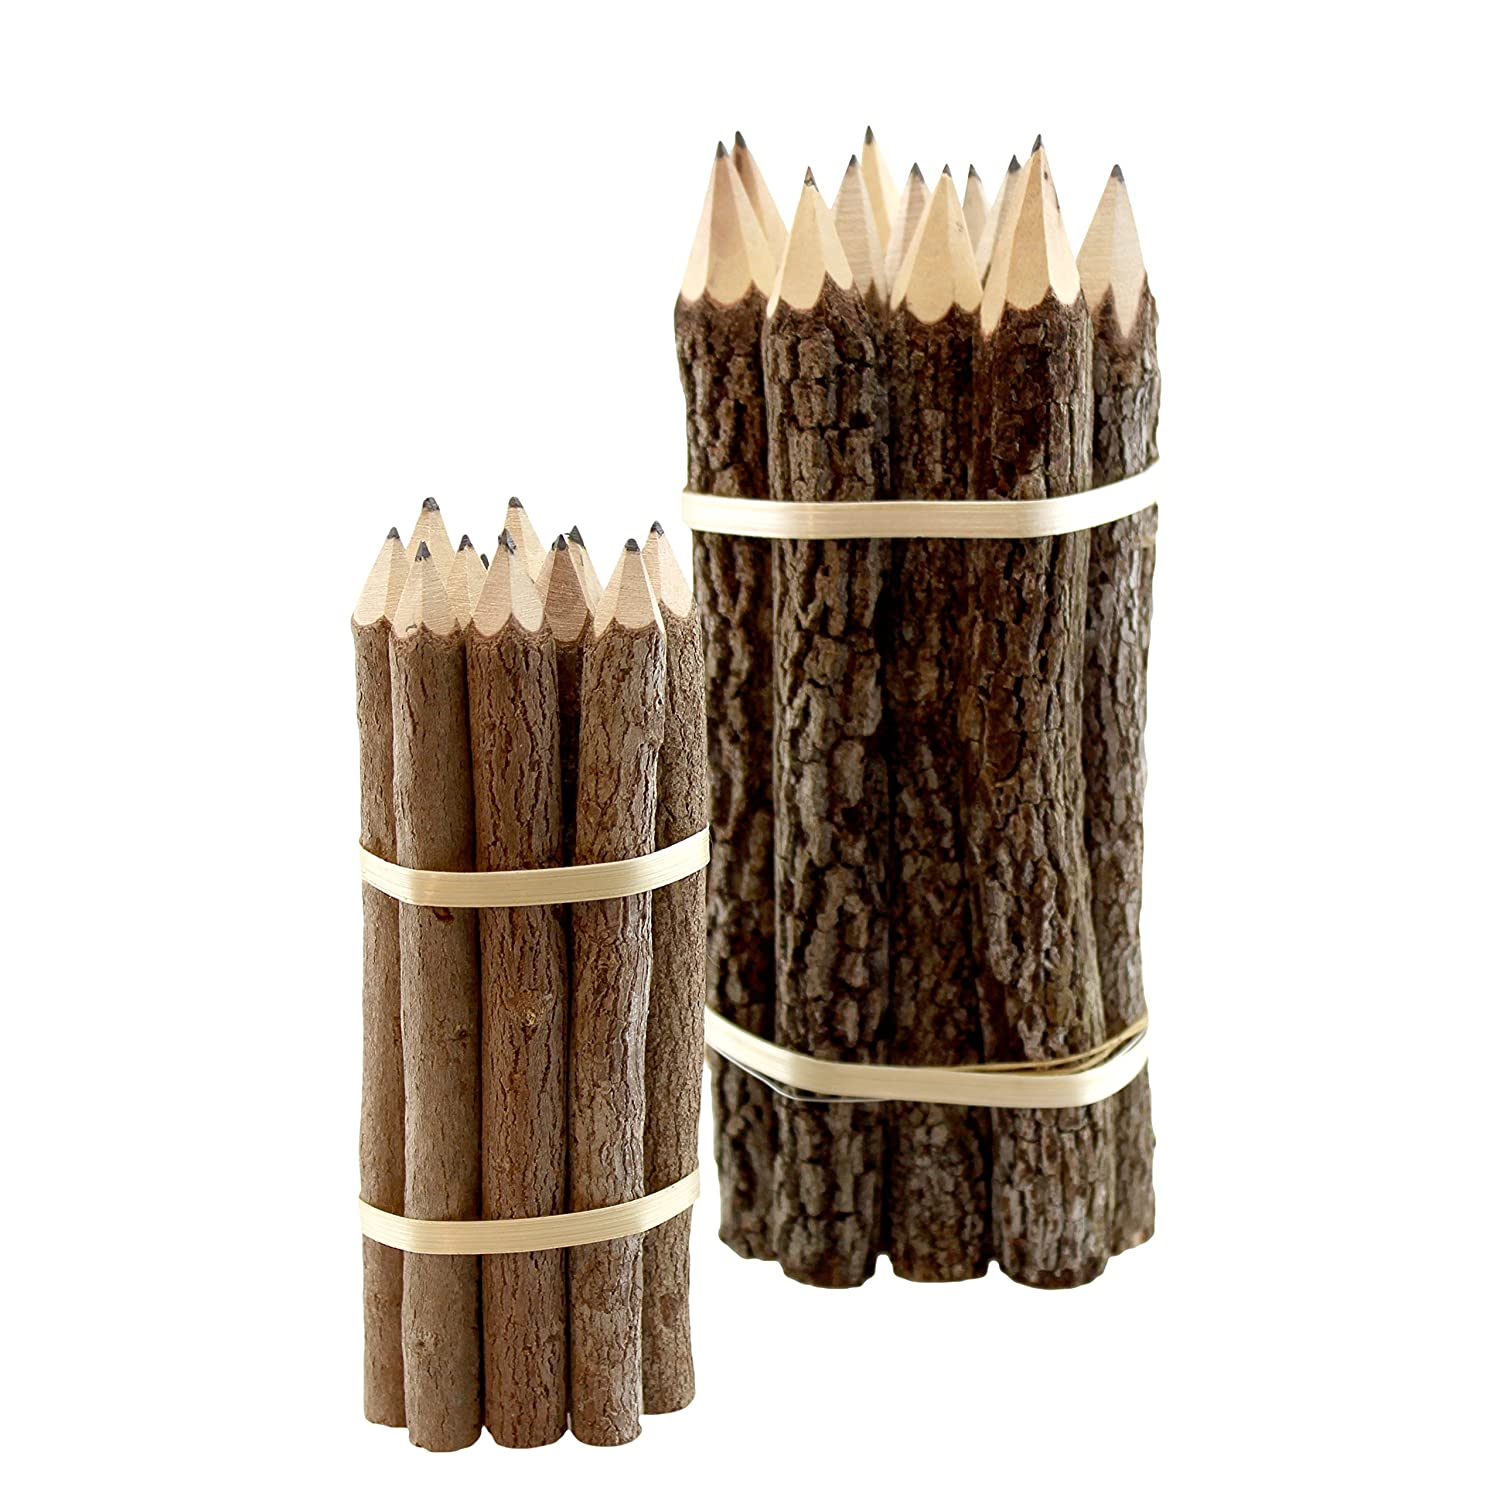 Tamarind Wood Branch Pencils, 12-Pencils (7 inches) BPN3 World Buyers BPN3ZZZZ